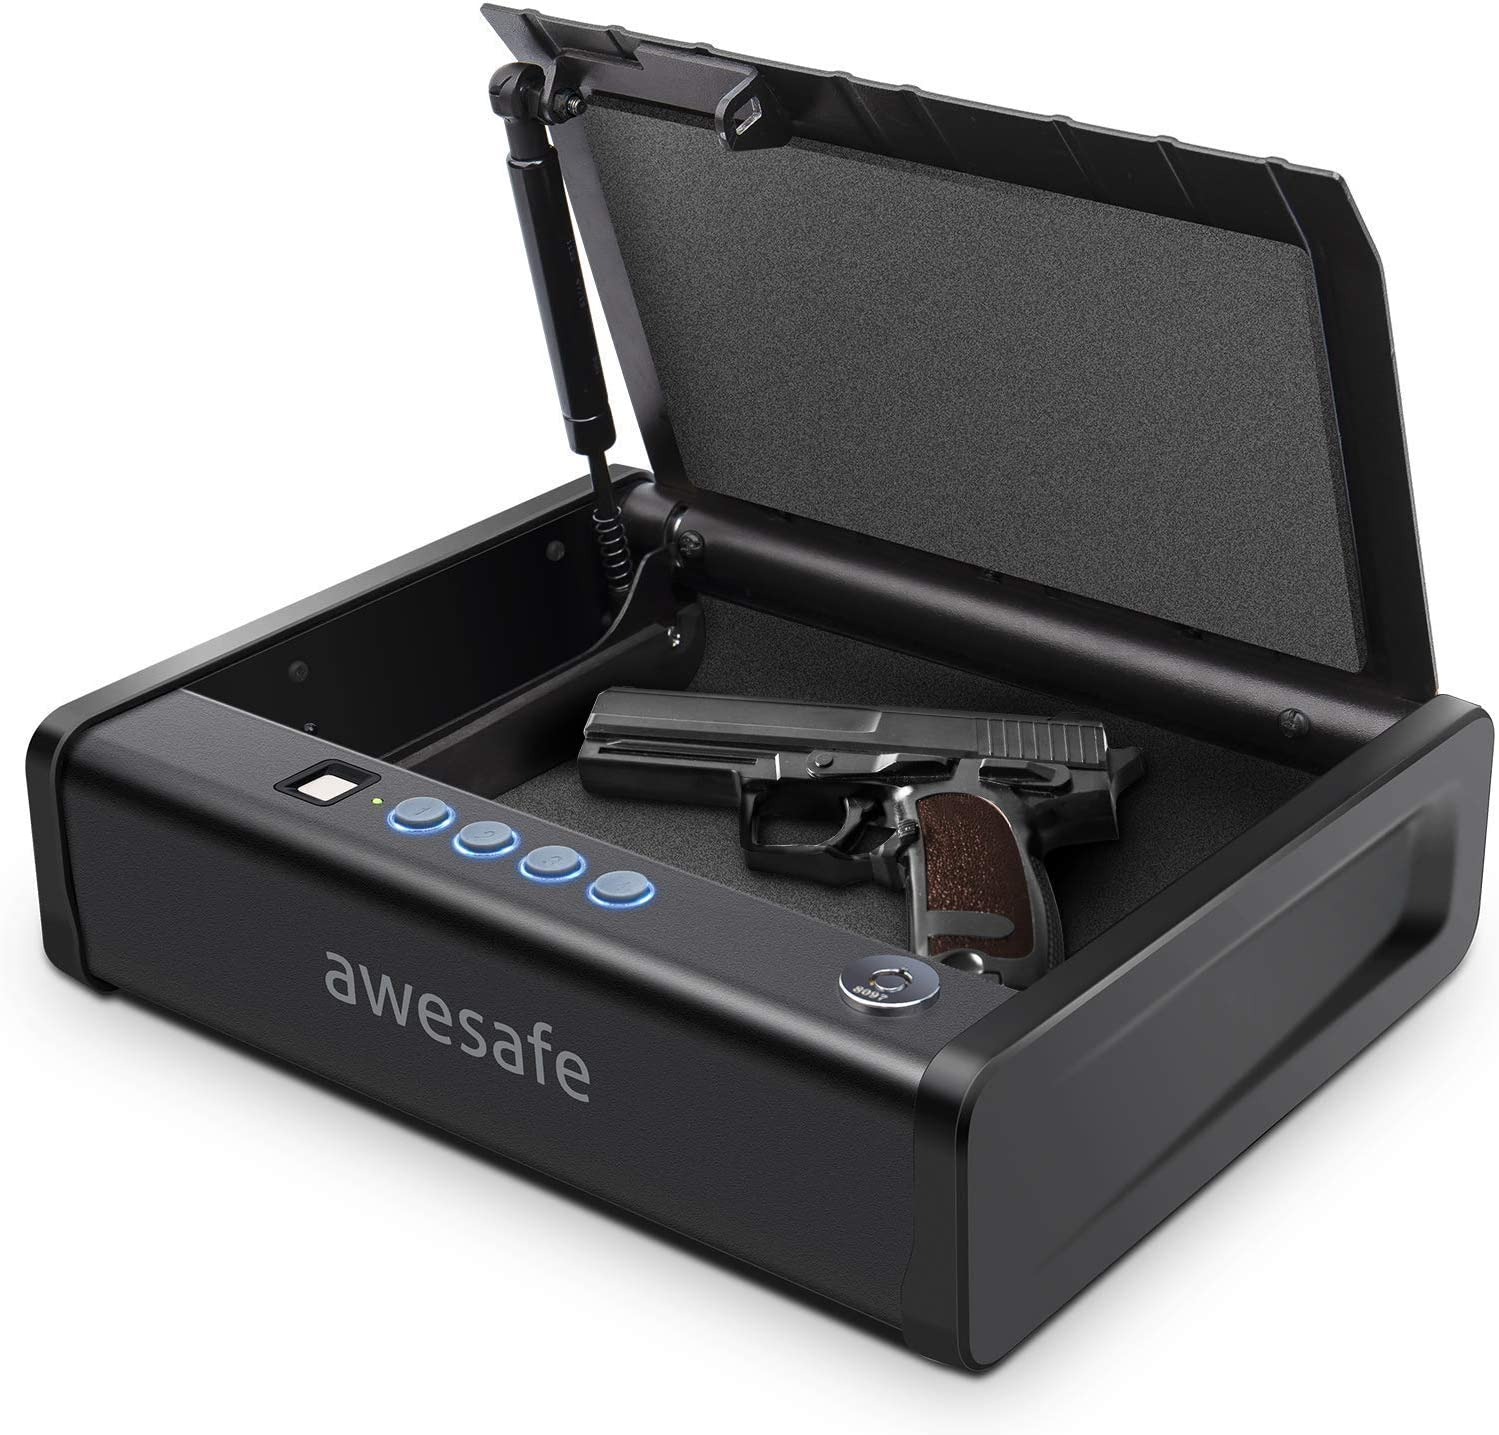 awesafe Gun Safe with Fingerprint Identification and Biometric Lock One Handgun Capacity : Sports & Outdoors